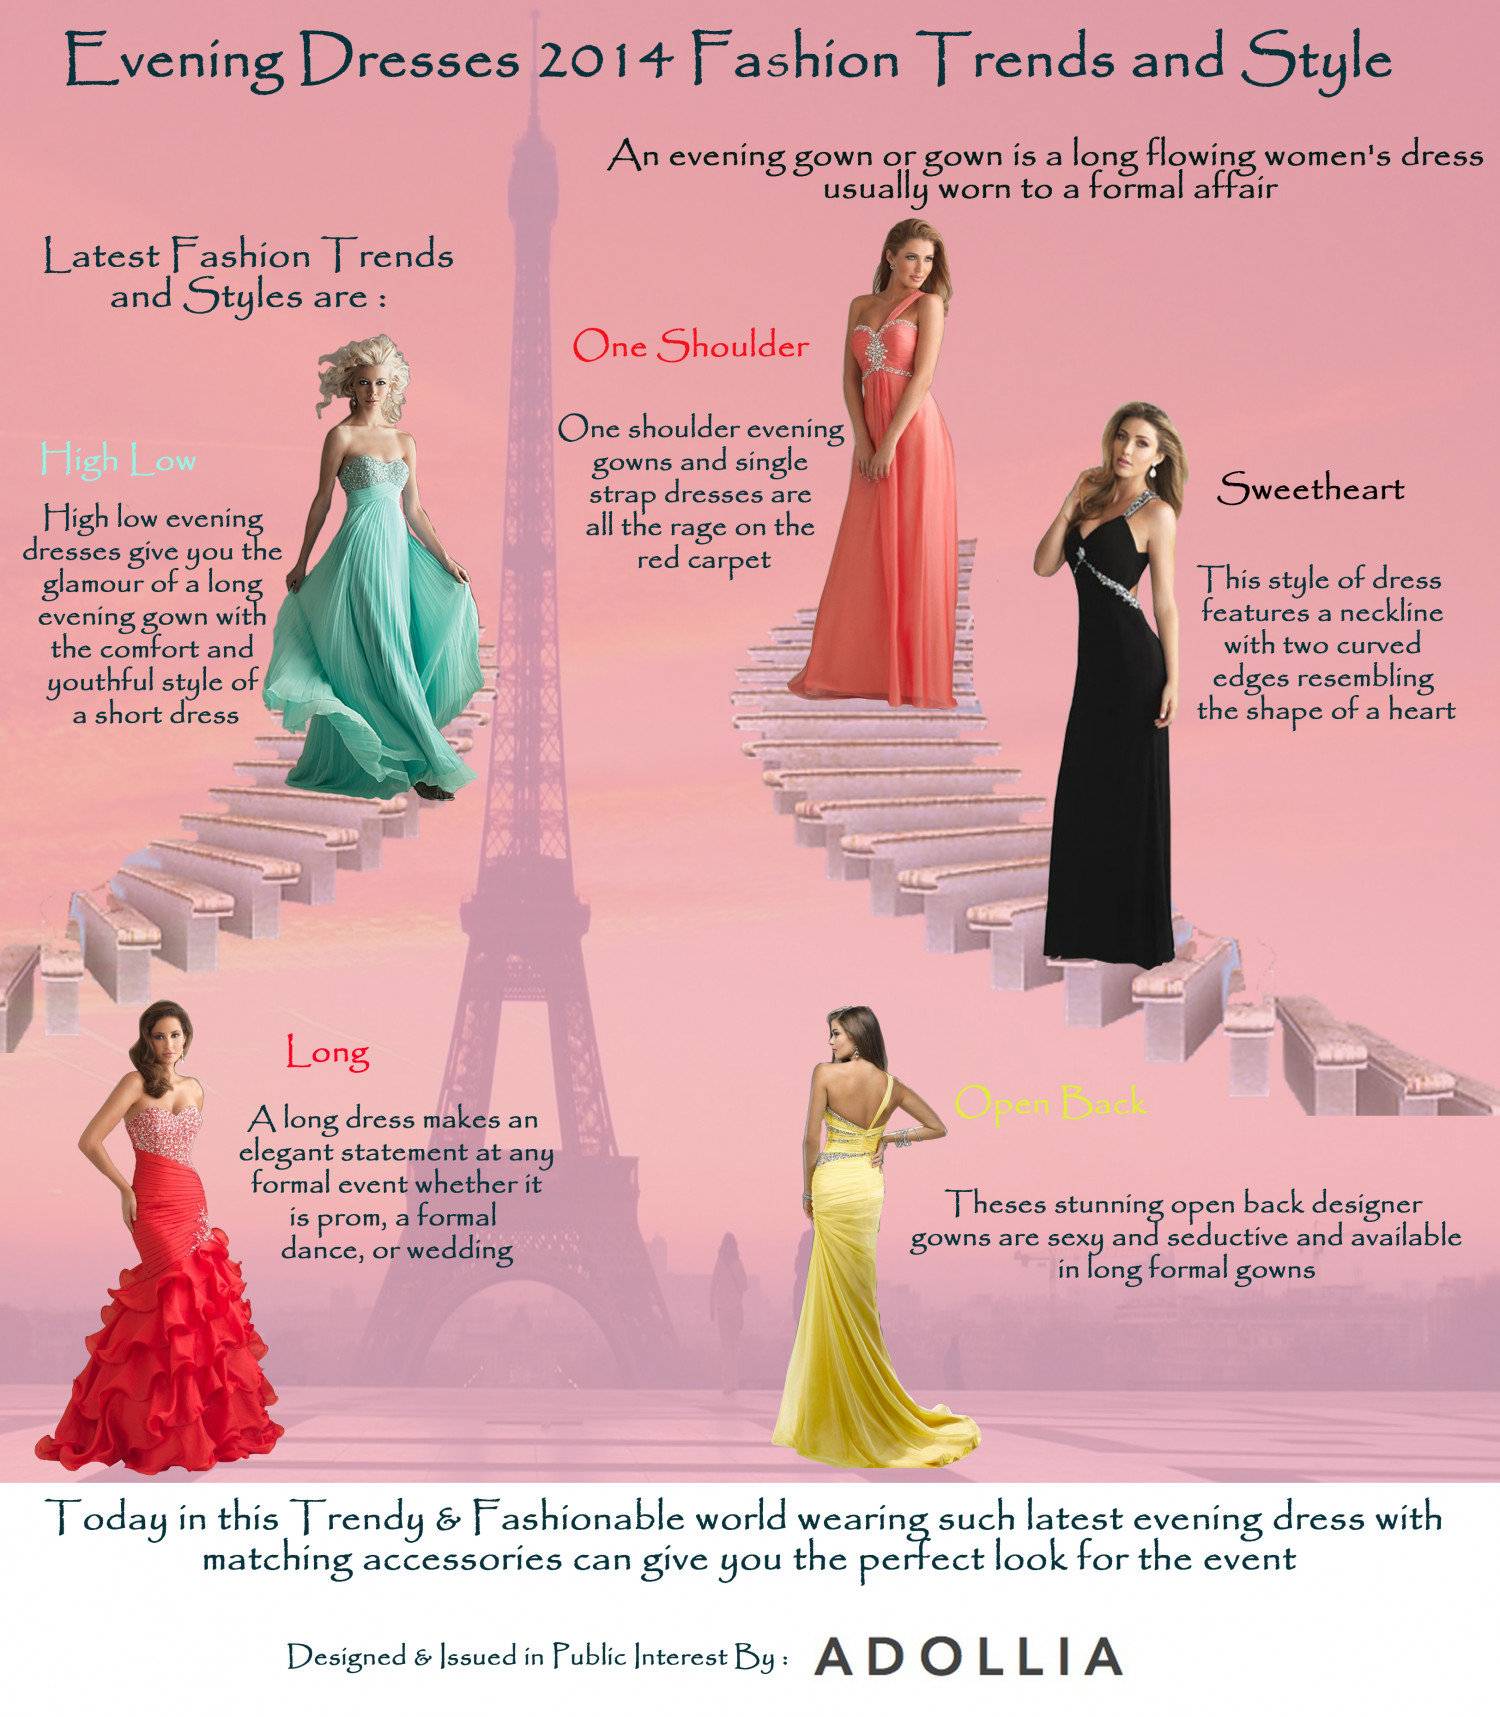 Evening Dresses 2014 Fashion Trends and Style Infographic